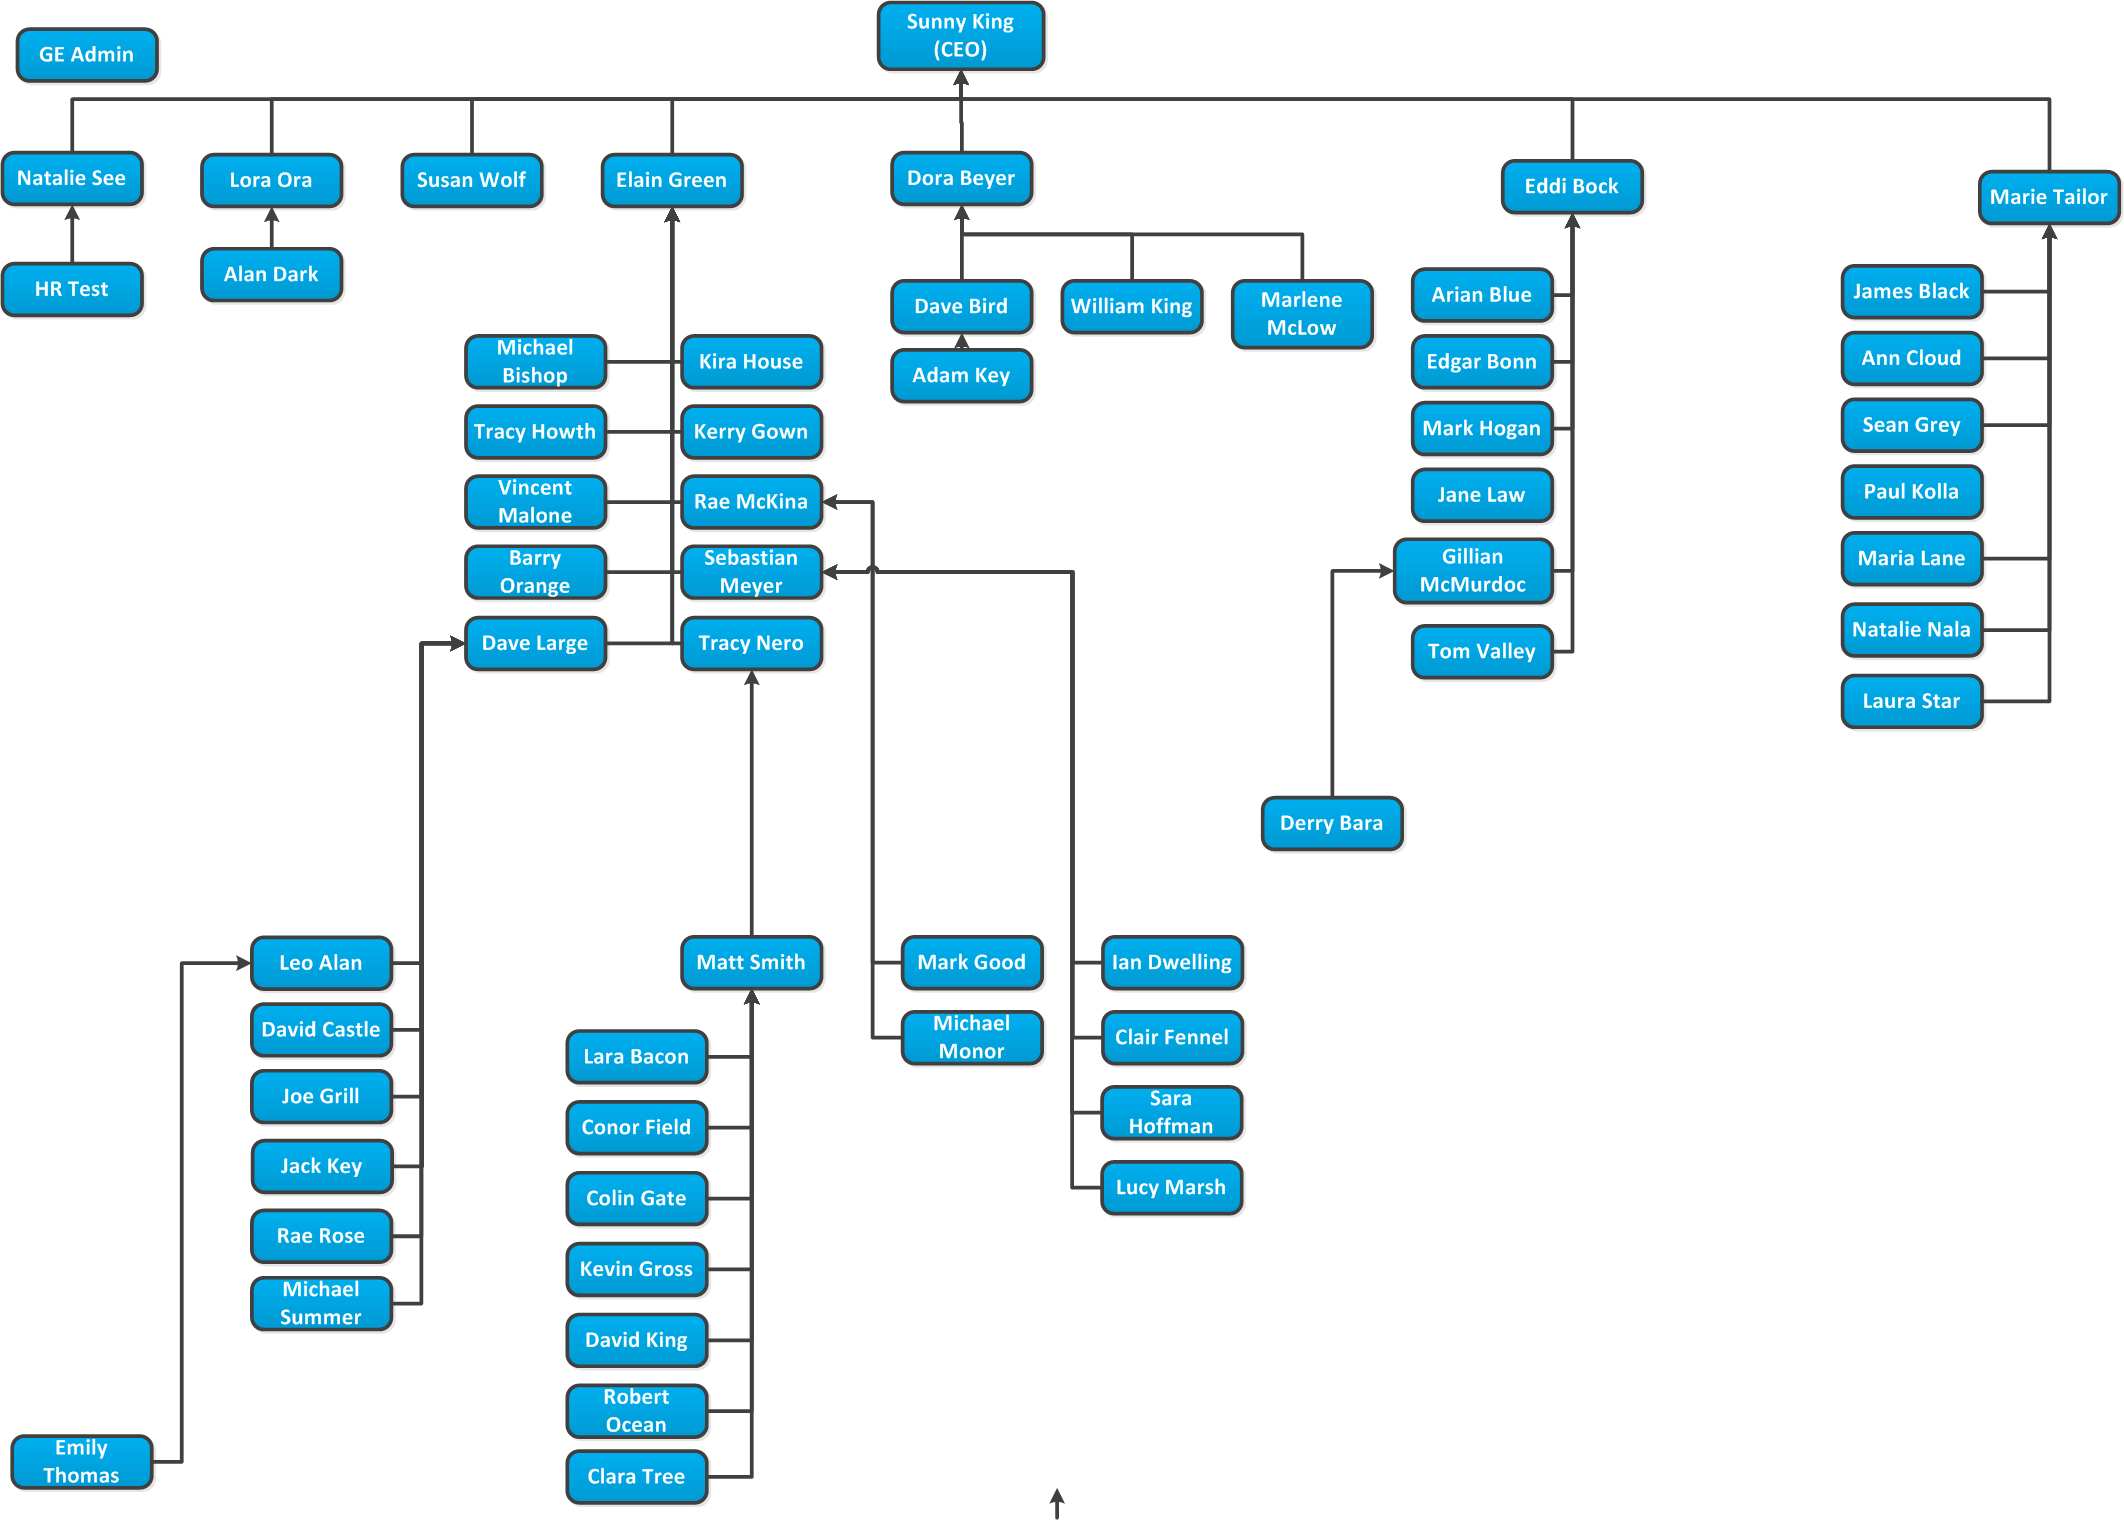 People tree of the demo organiziation.png